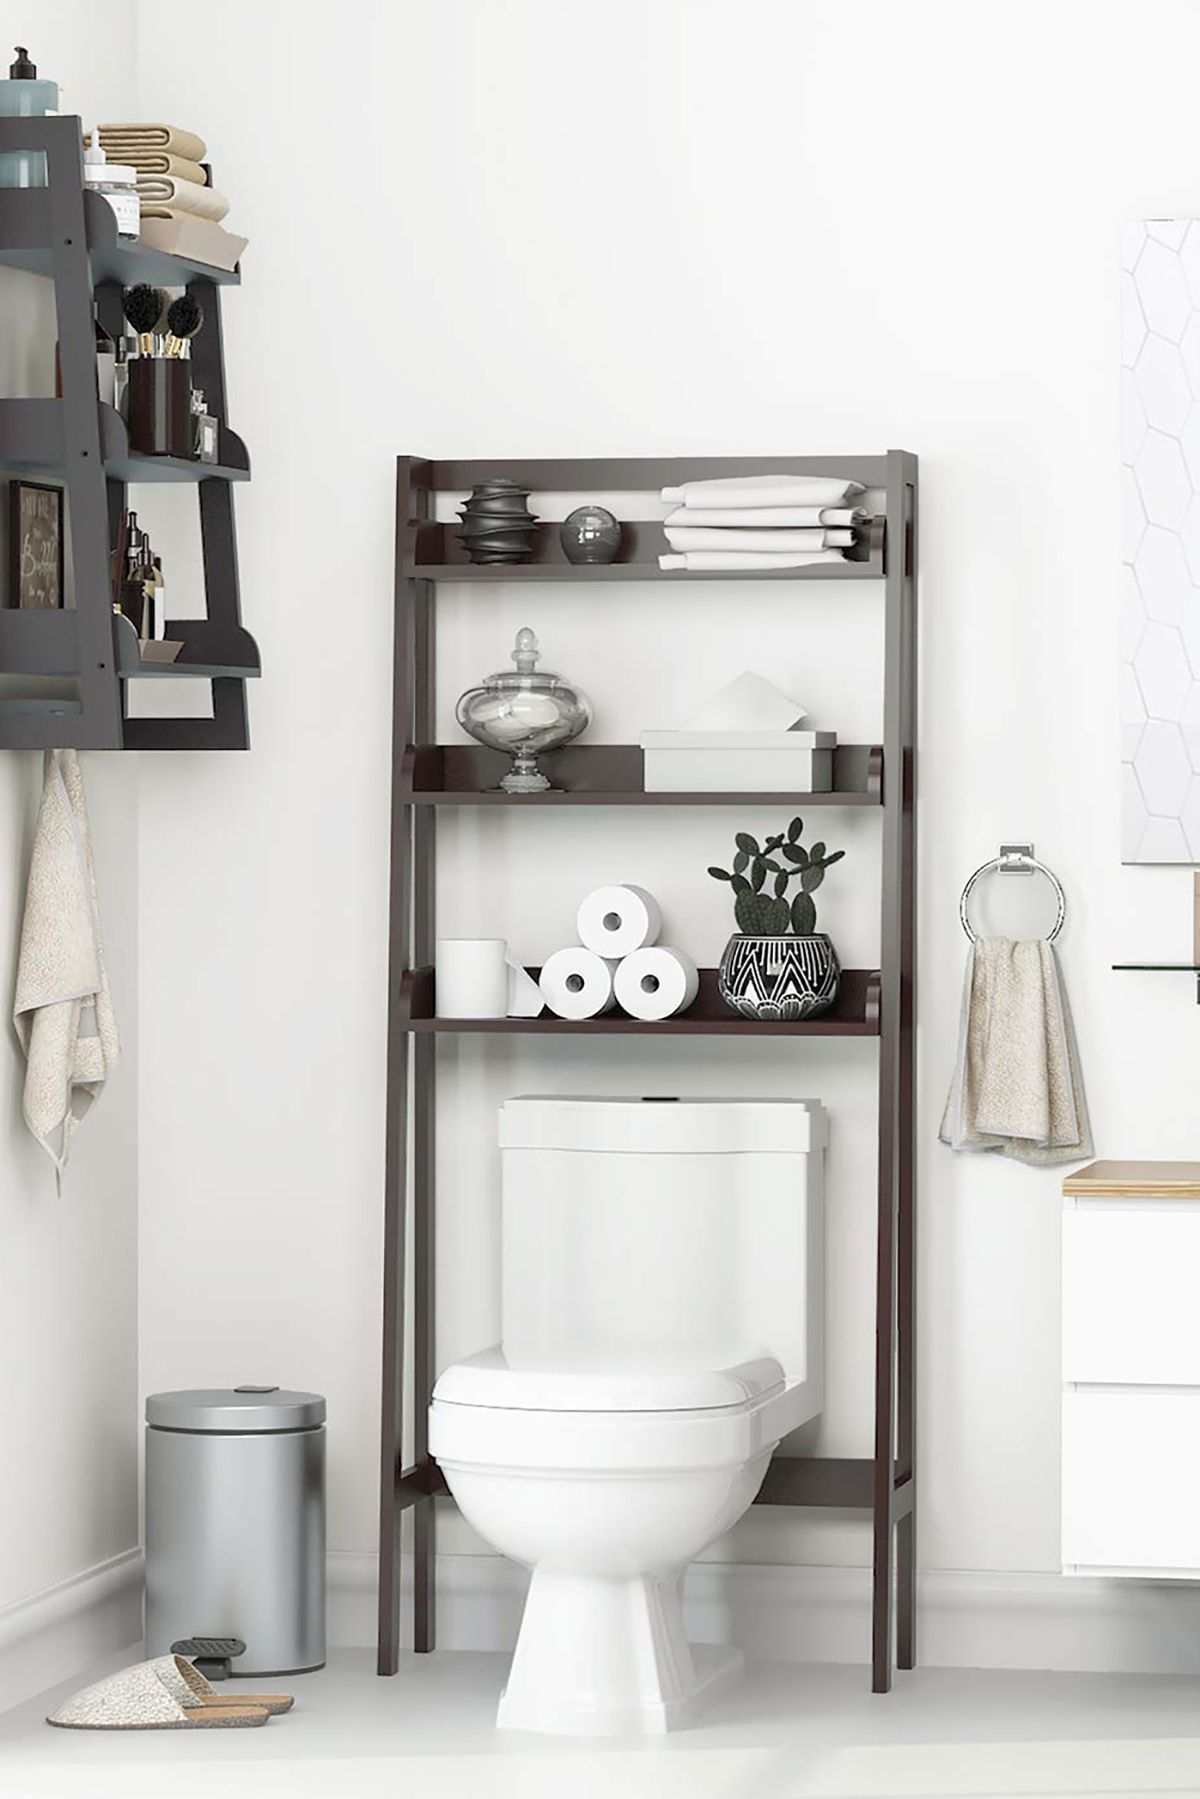 How To Organize A Bathroom Over The Toilet Shelves